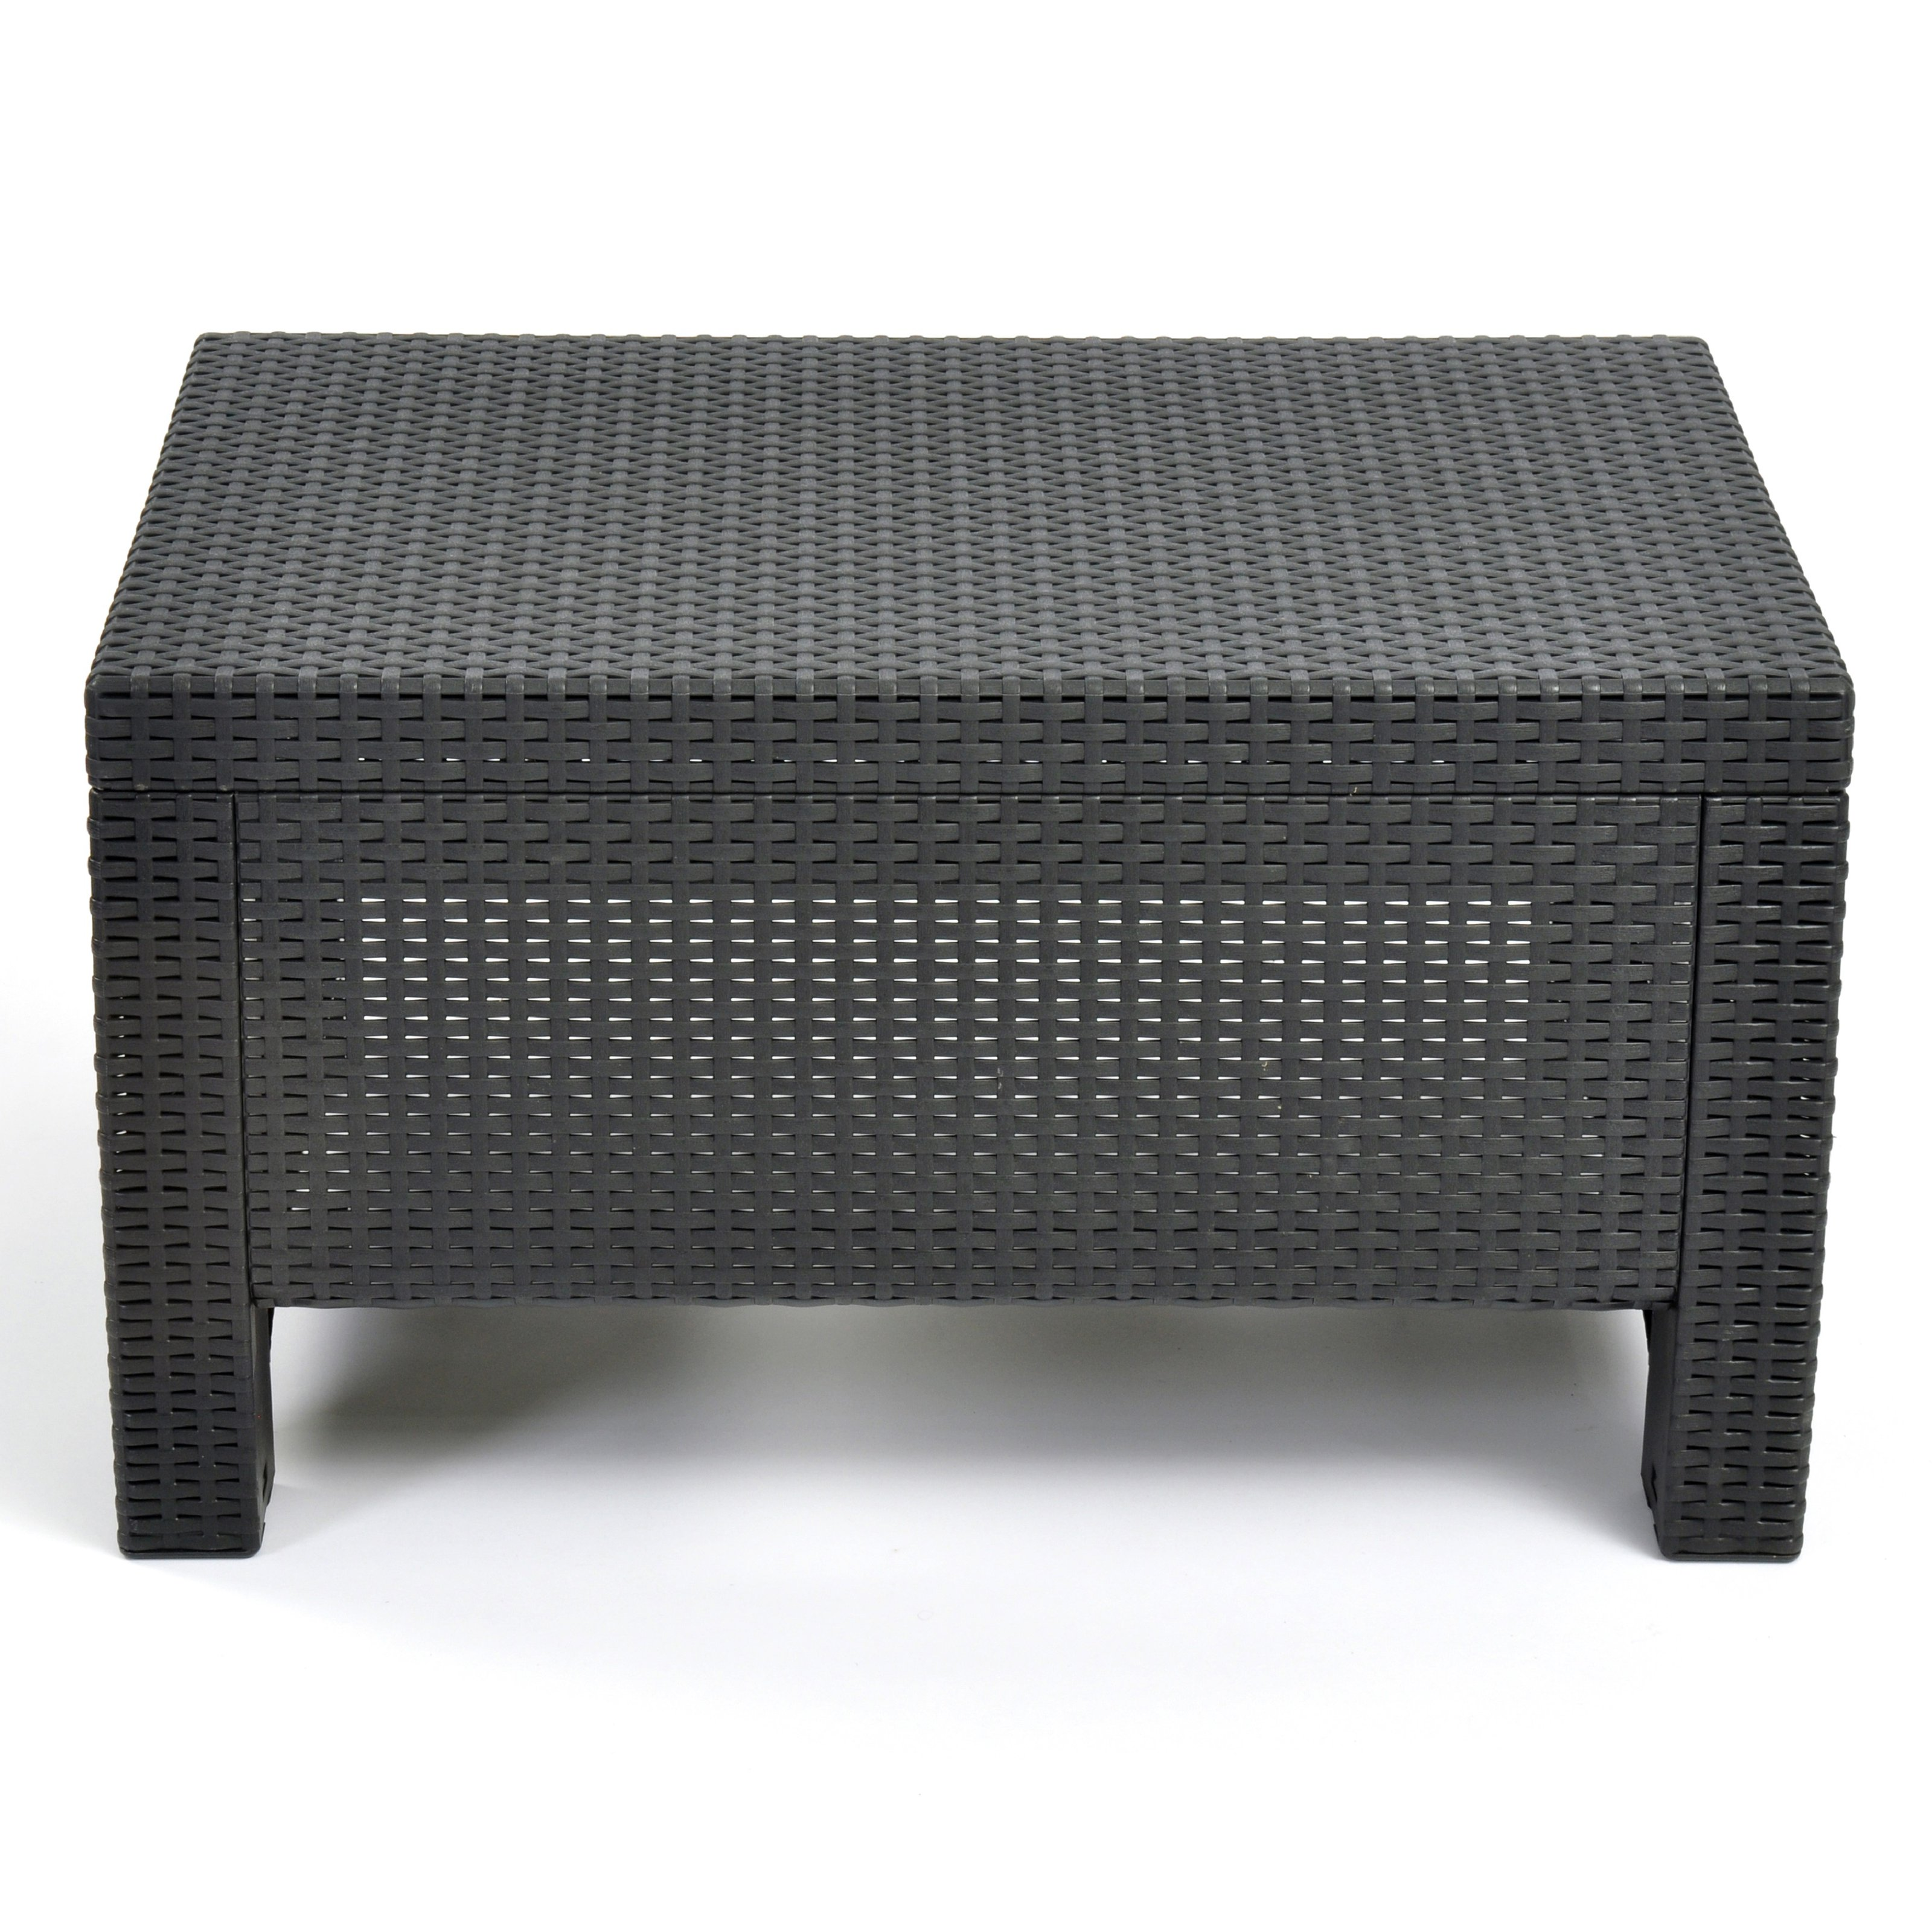 table large square coffee white plastic outdoor side wilson and fisher patio furniture folding garden accent tables dark wood small wooden black full size linen placemats grey